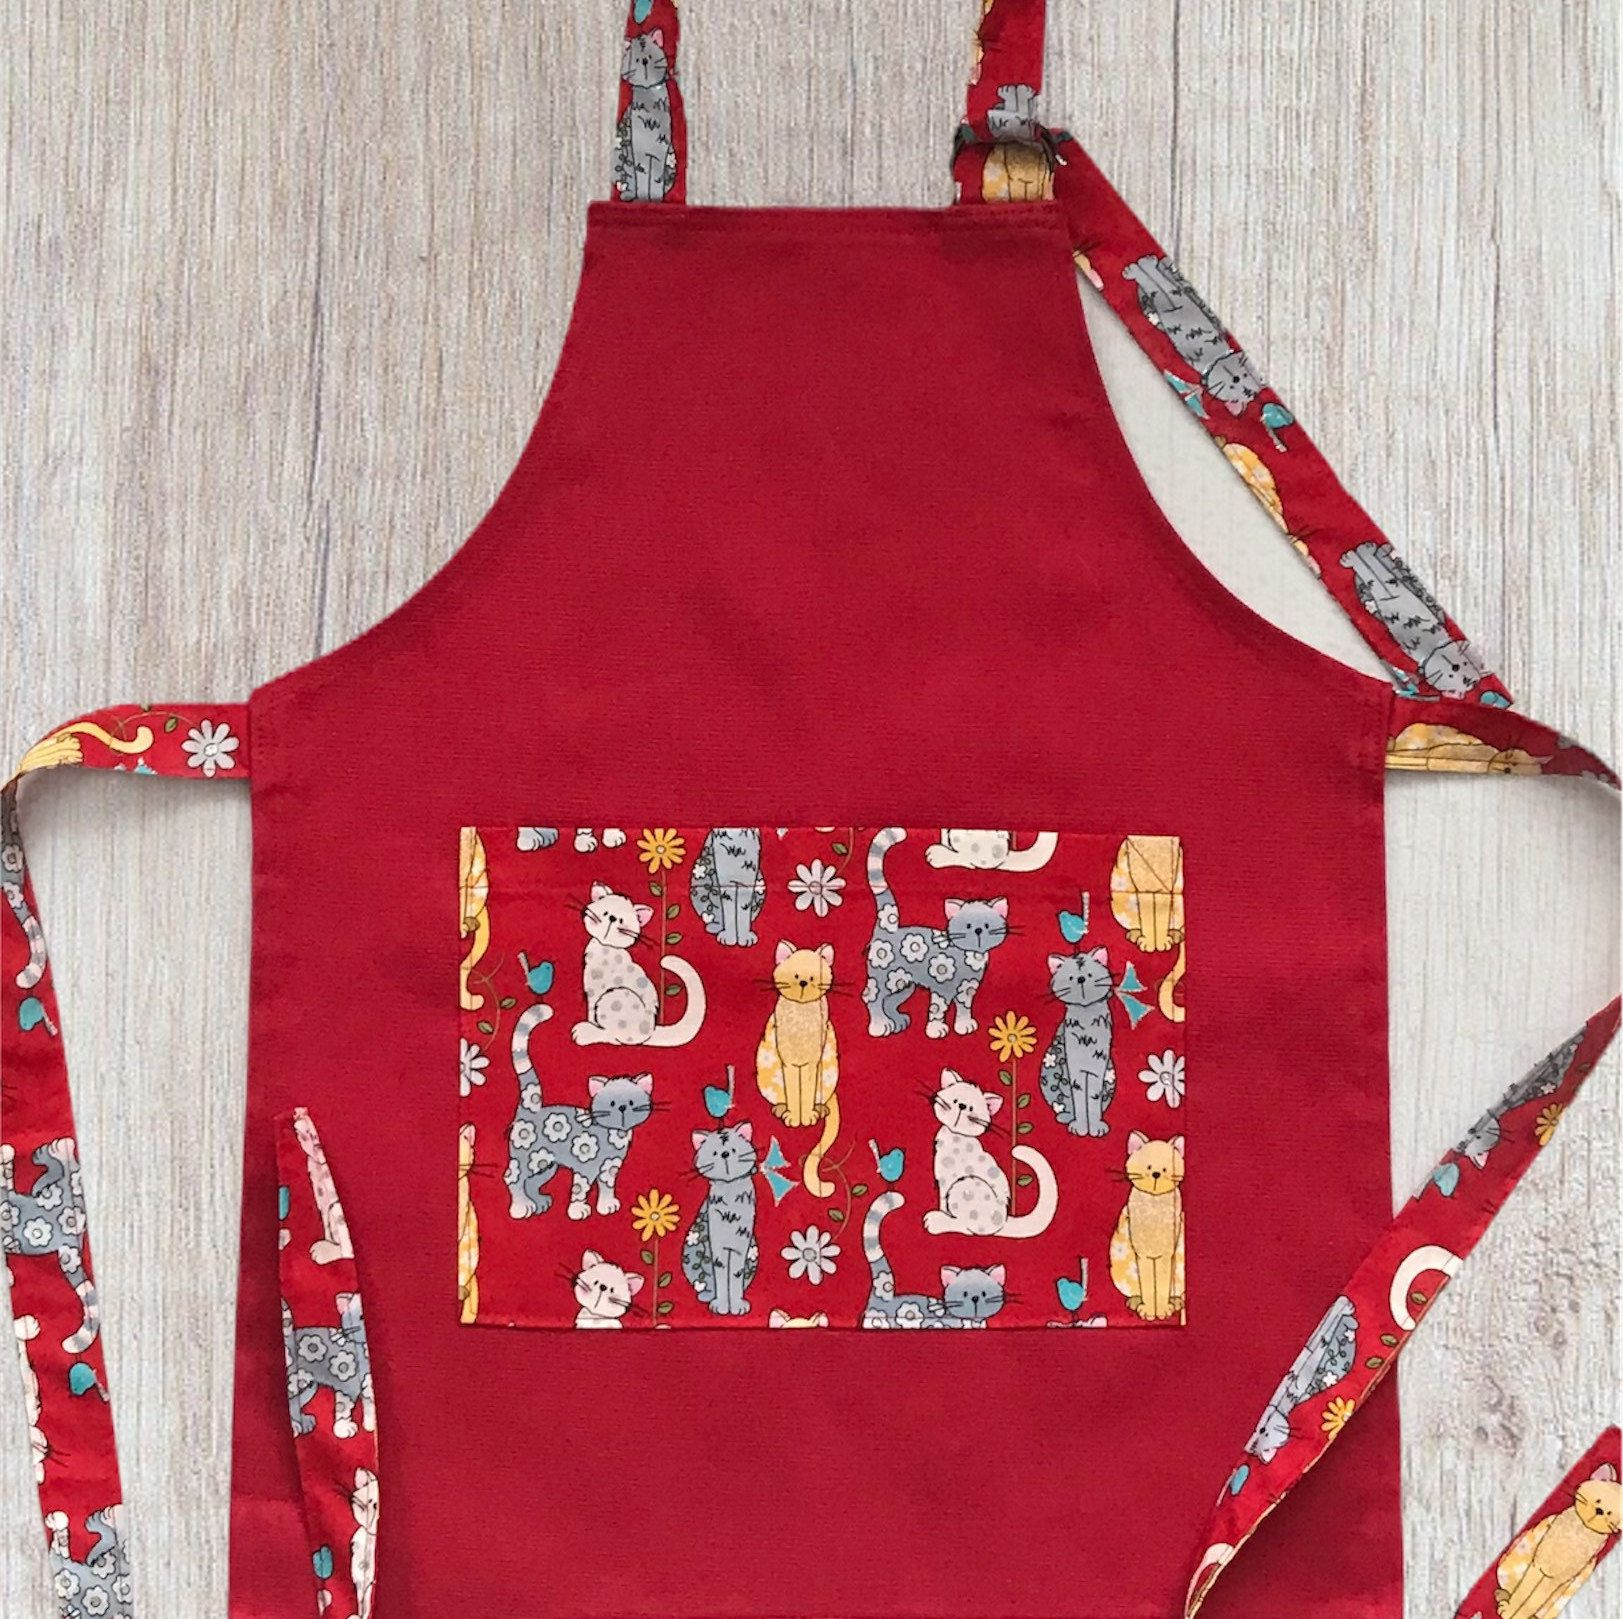 Kid S Aprons Children S Aprons Youth Aprons Aprons Cooking Aprons Kitten Aprons Cat Aprons Red Aprons Girl S Aprons Kid S Cooking In 2020 Childrens Aprons Kids Apron Cooking Apron